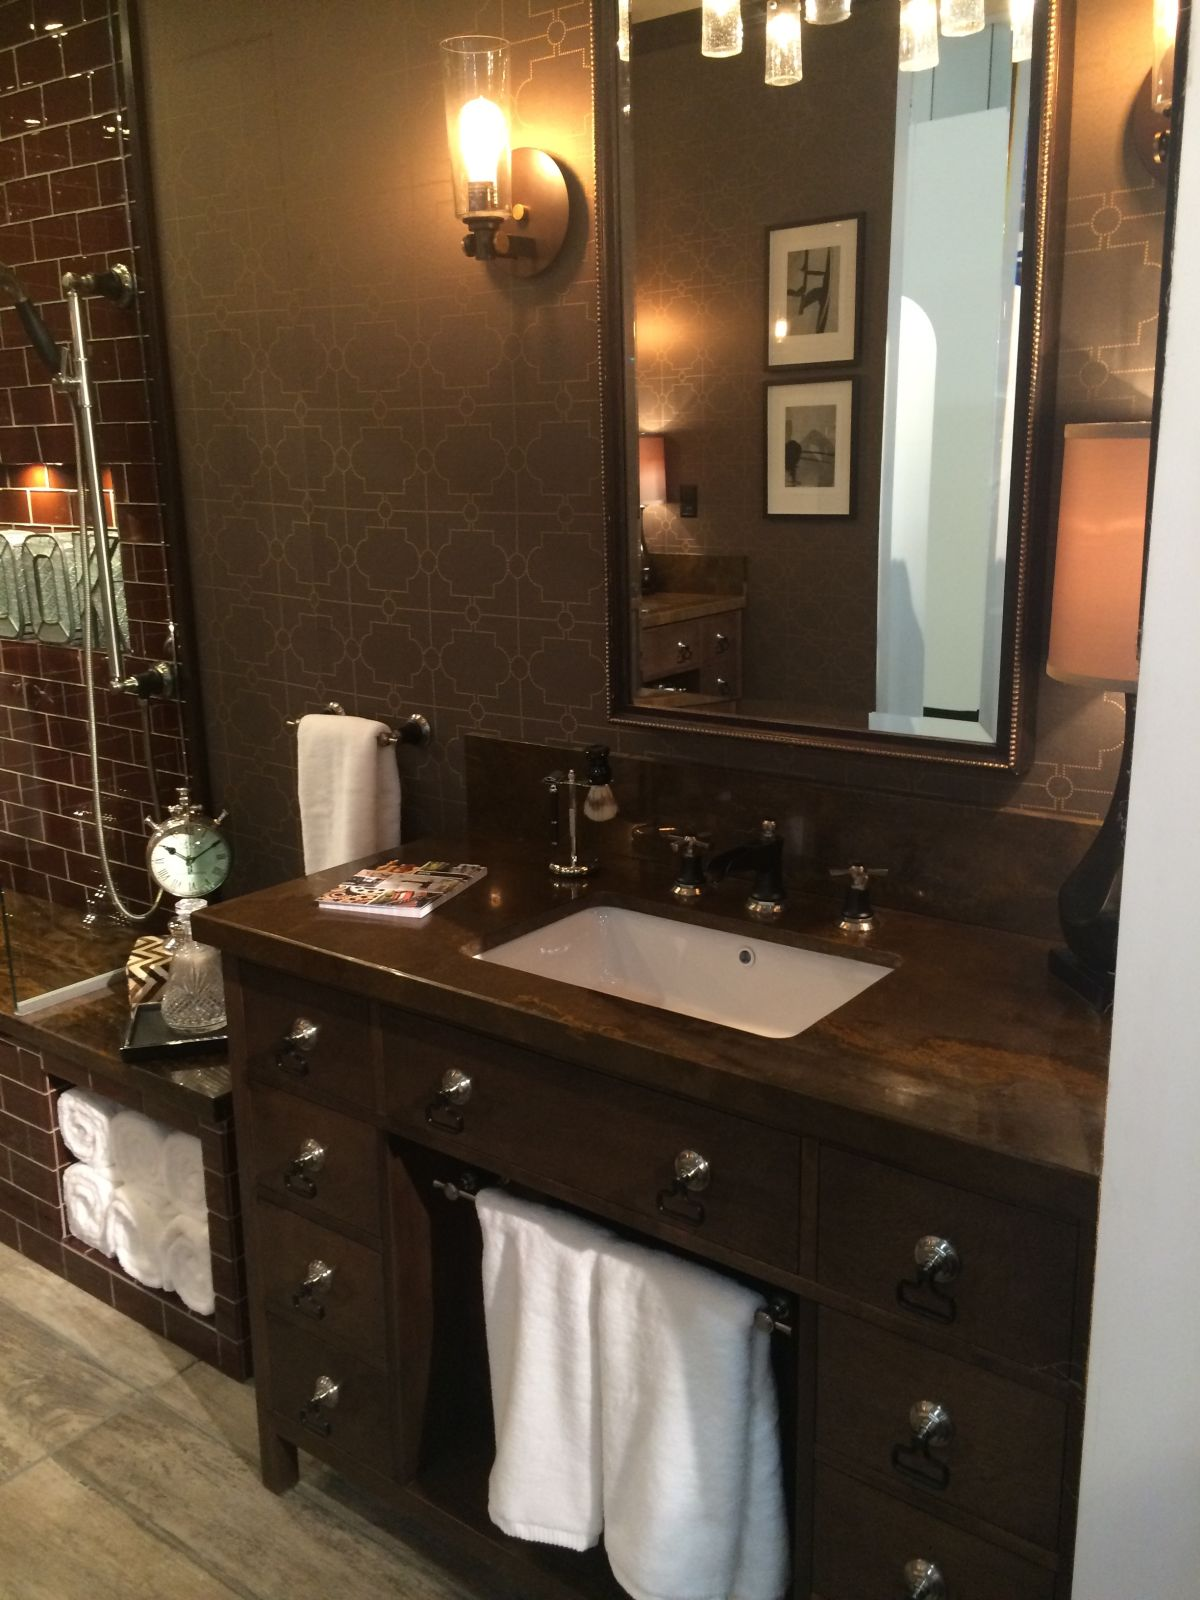 This dresser-style vanity offers plenty of storage space as well as room for hanging hand towels without taking up wall space.